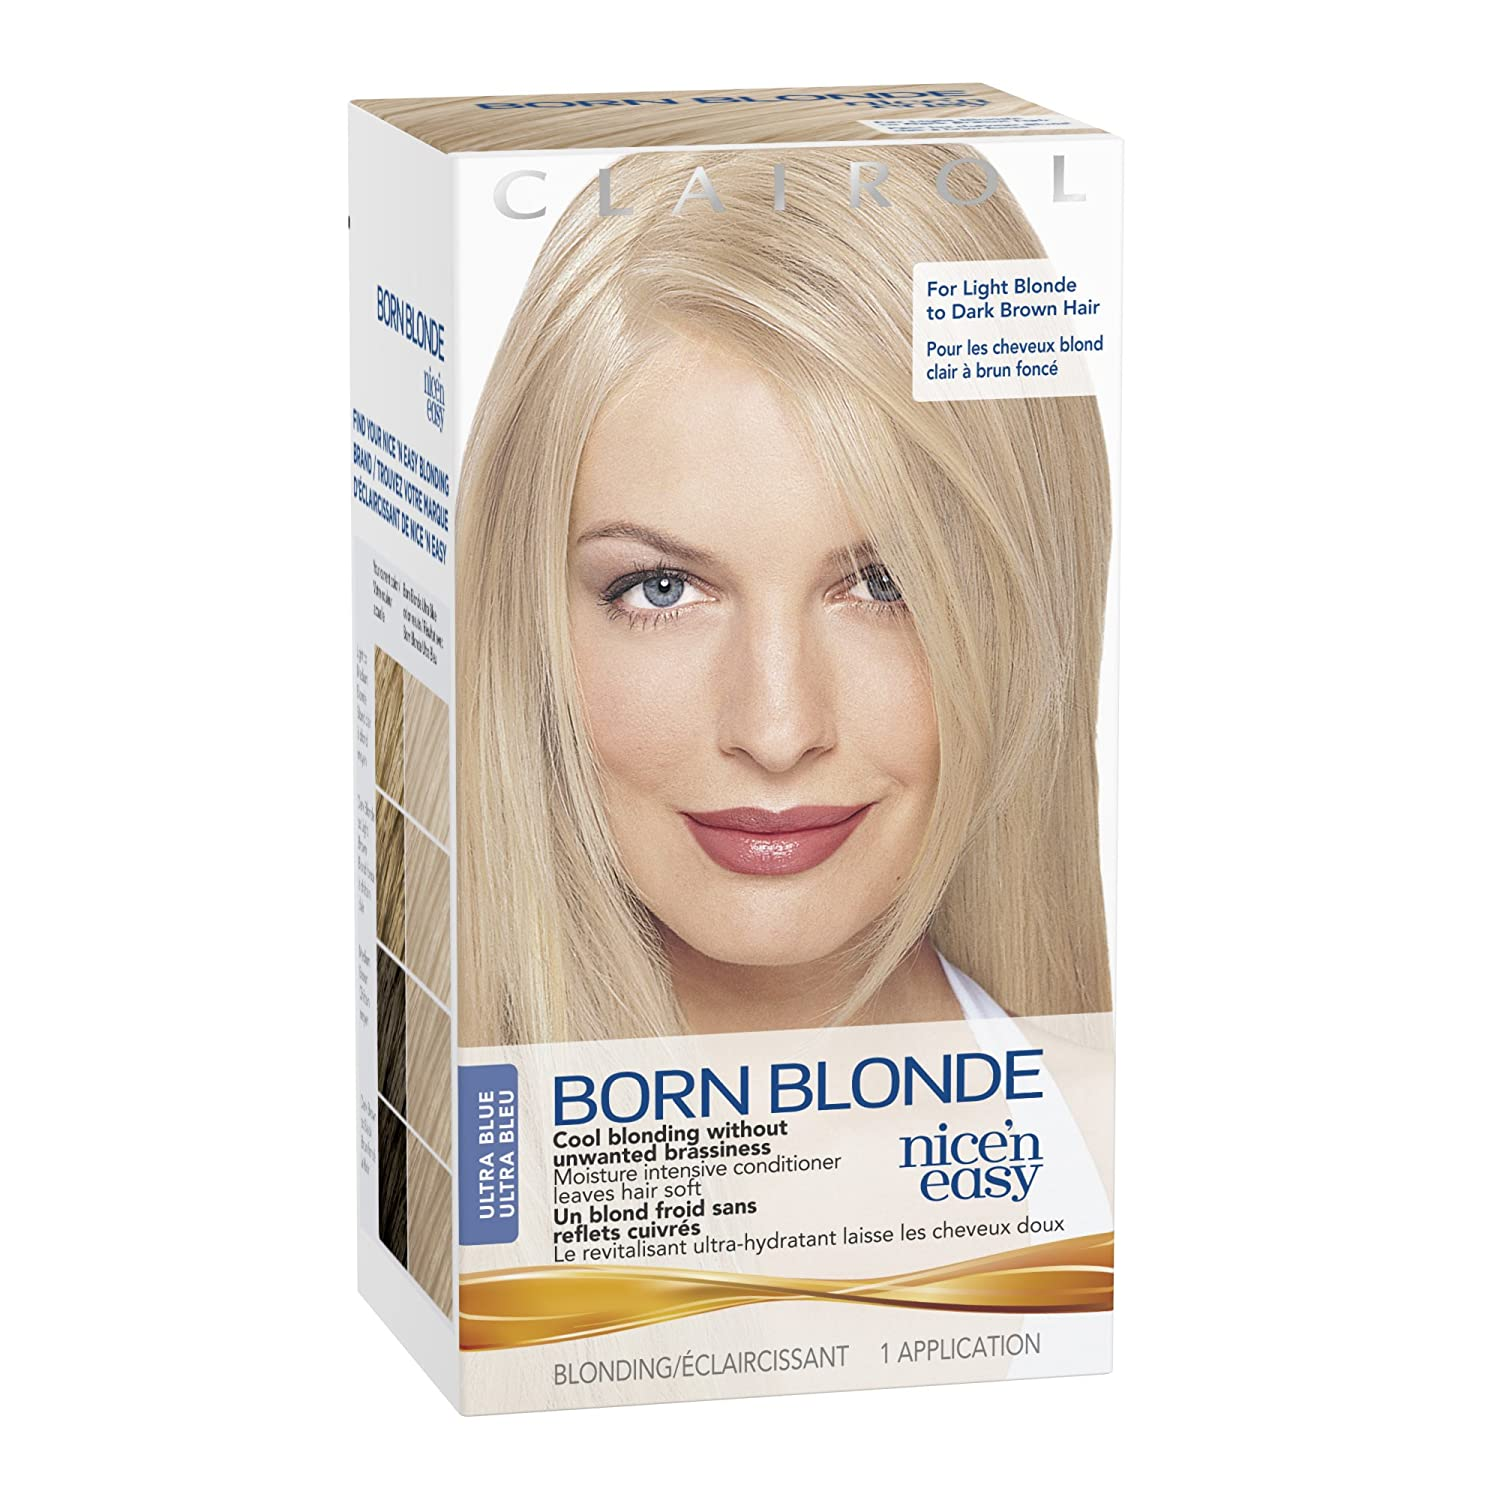 Amazon.com : Clairol Nice U0027N Easy Born Blonde Hair Color, Ultra Blue 1 Kit  (Pack Of 3) : Chemical Hair Dyes : Beauty